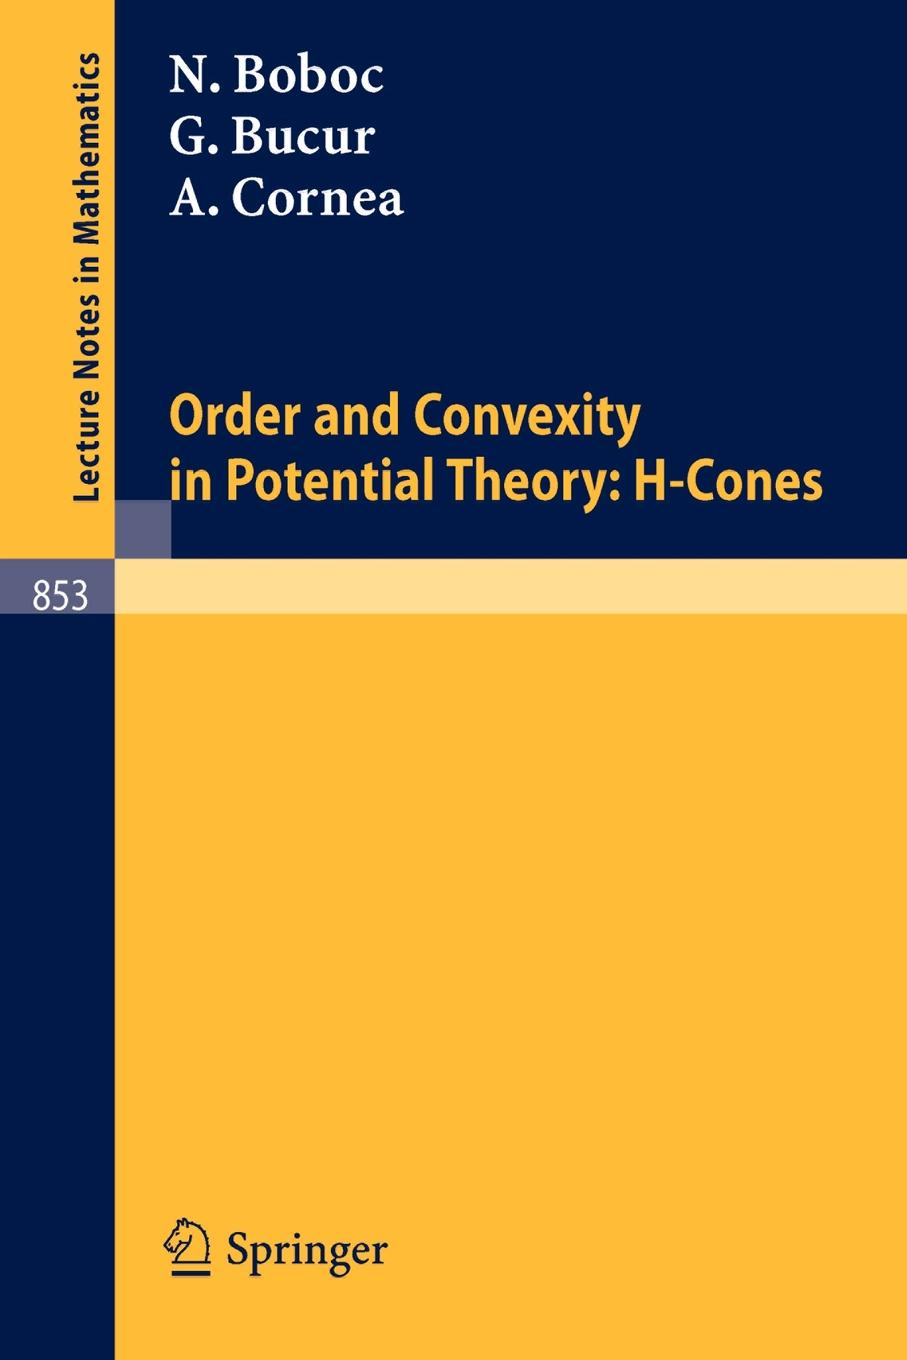 лучшая цена N. Boboc, G. Bucur, A. Cornea Order and Convexity in Potential Theory. H-Cones